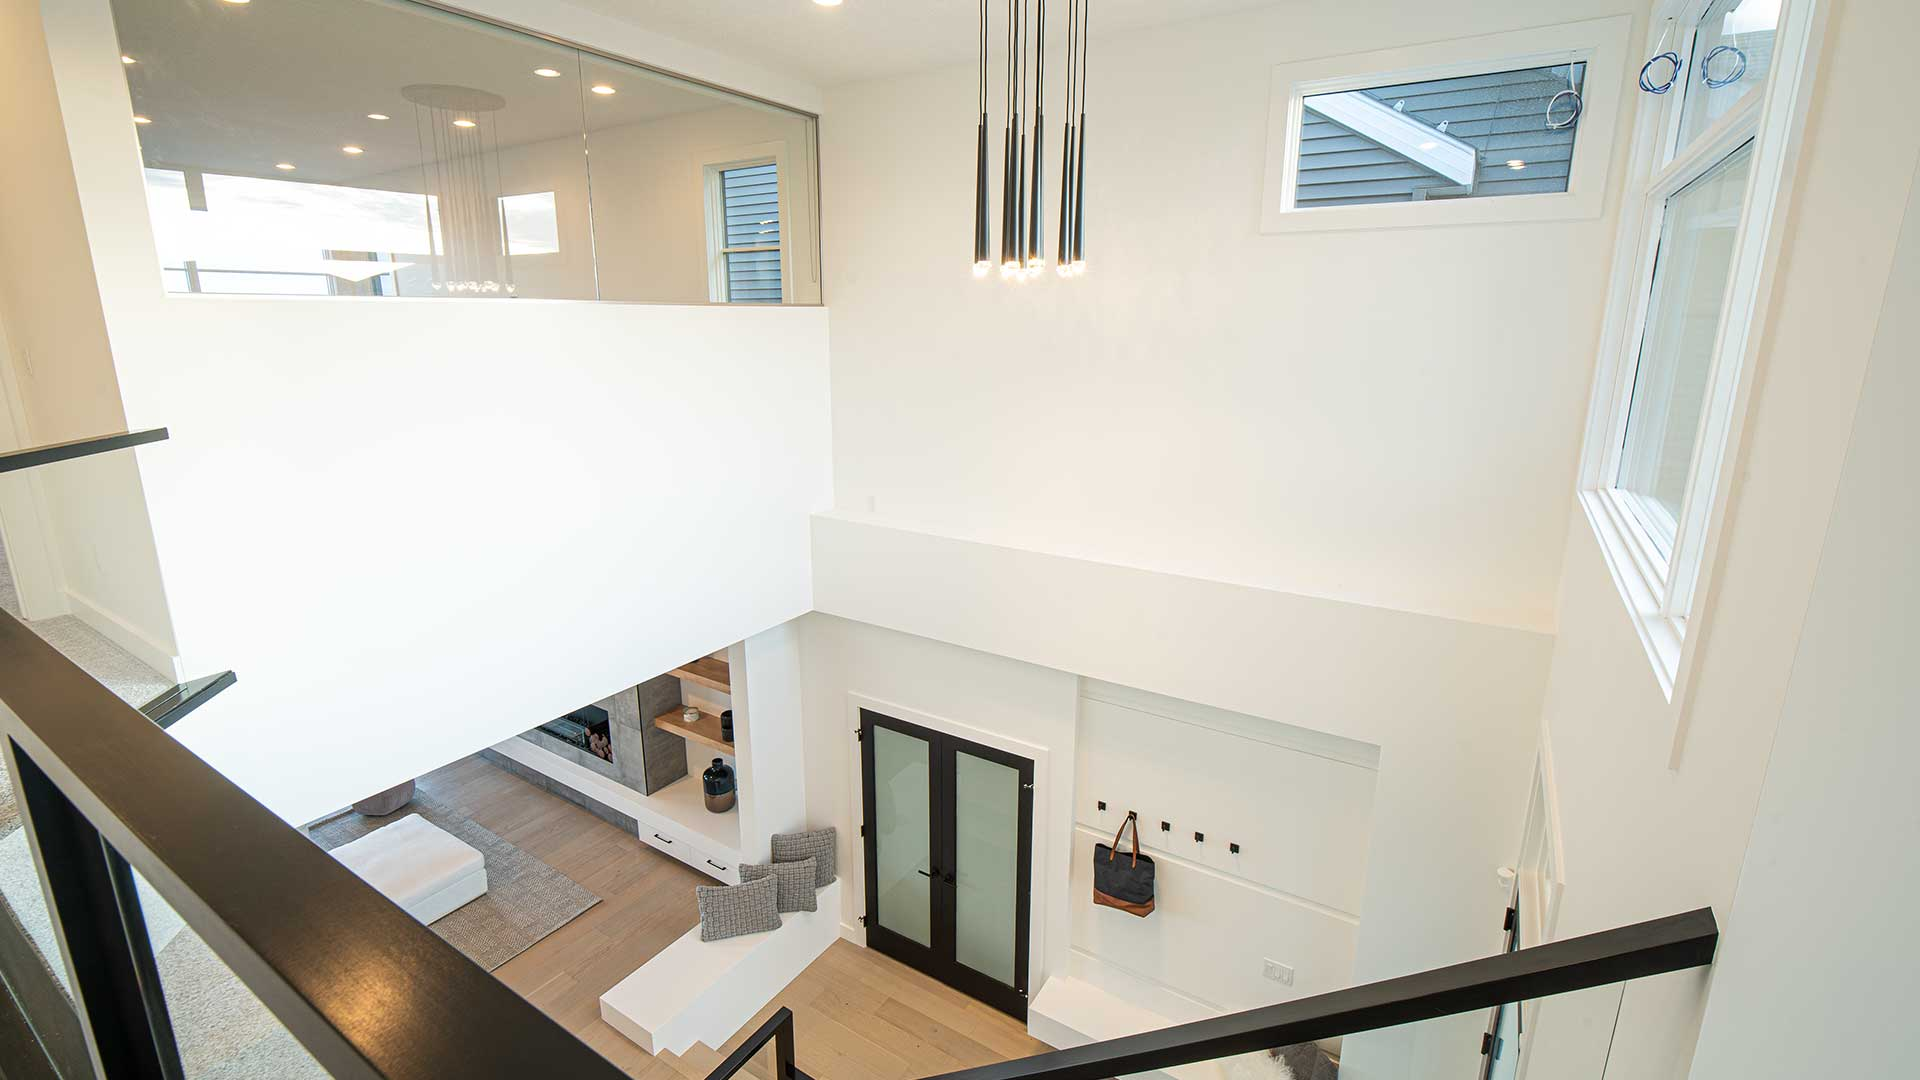 kanvi-homes-Edmonton-custom-home-builders-modern-homes9-1